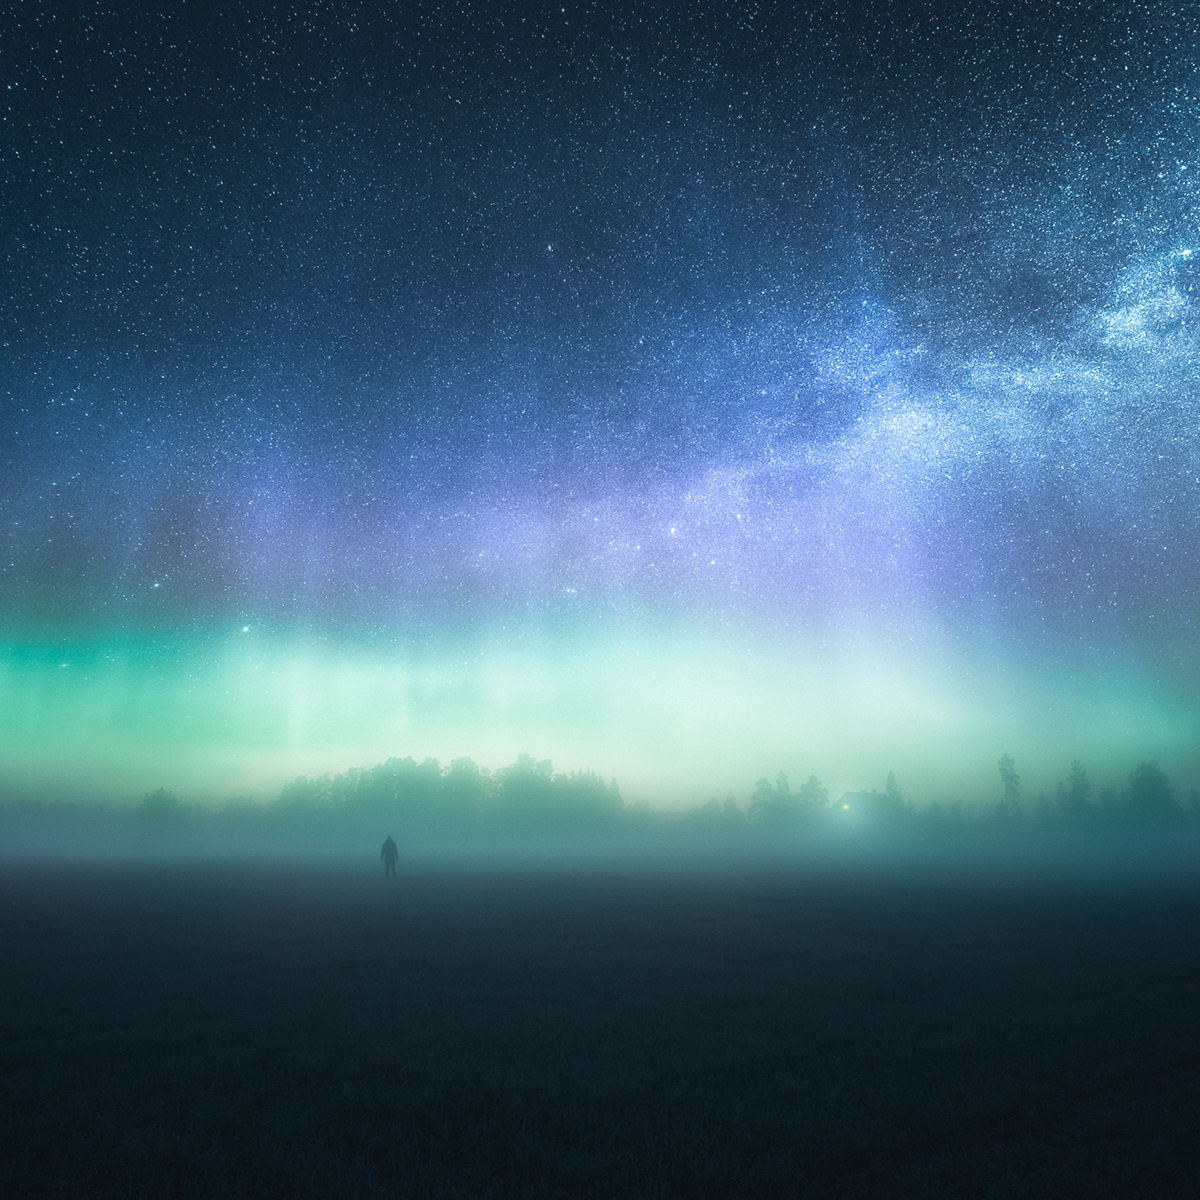 Mikko Lagerstedt - Invisible by day - 3